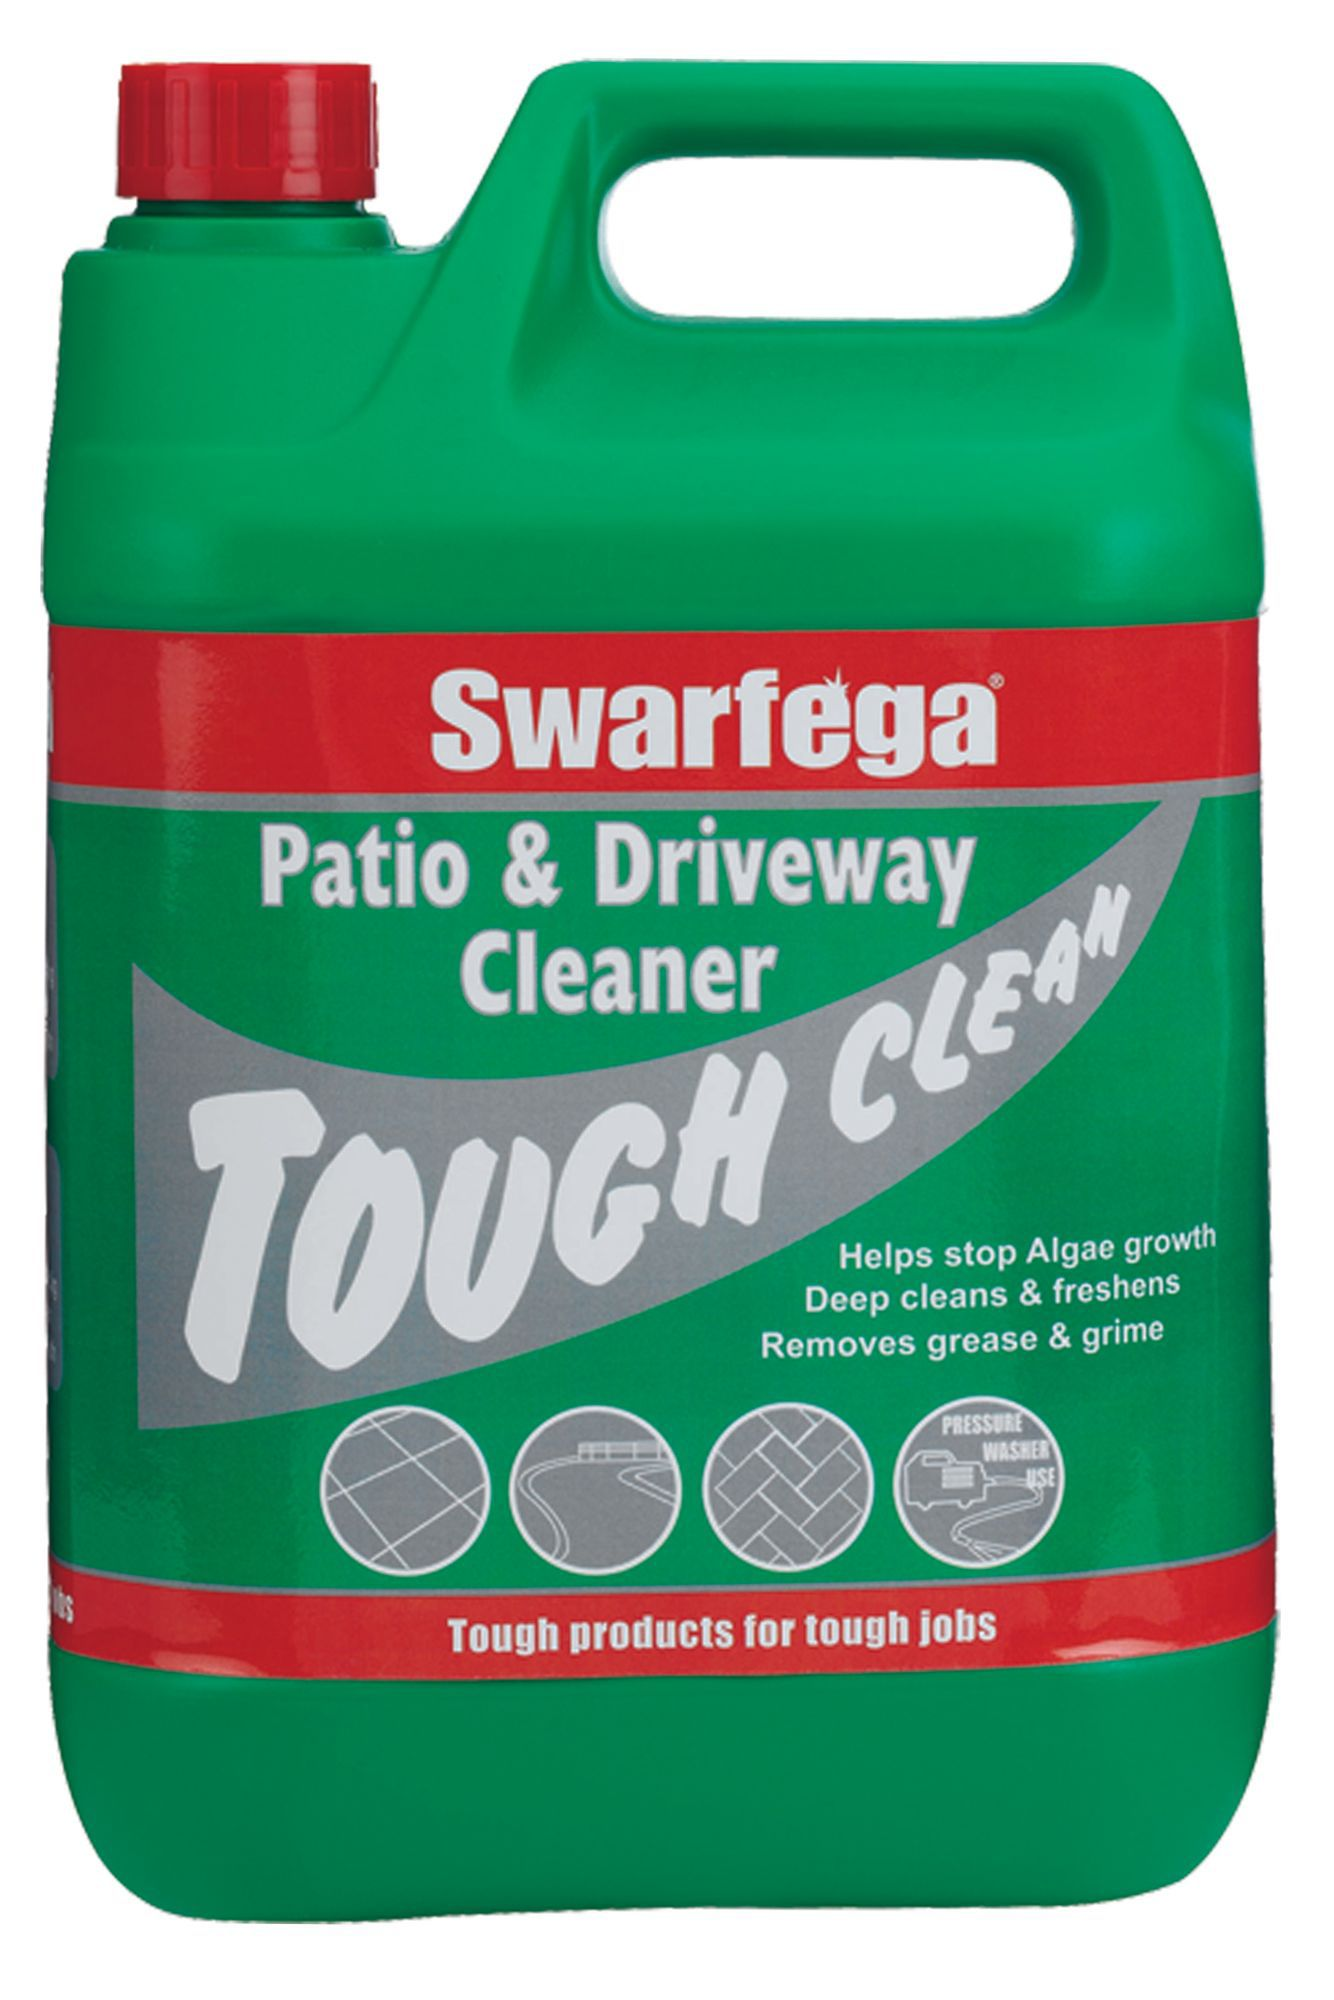 Swarfega patio driveway cleaner 5000 ml departments for Driveway cleaning chemicals